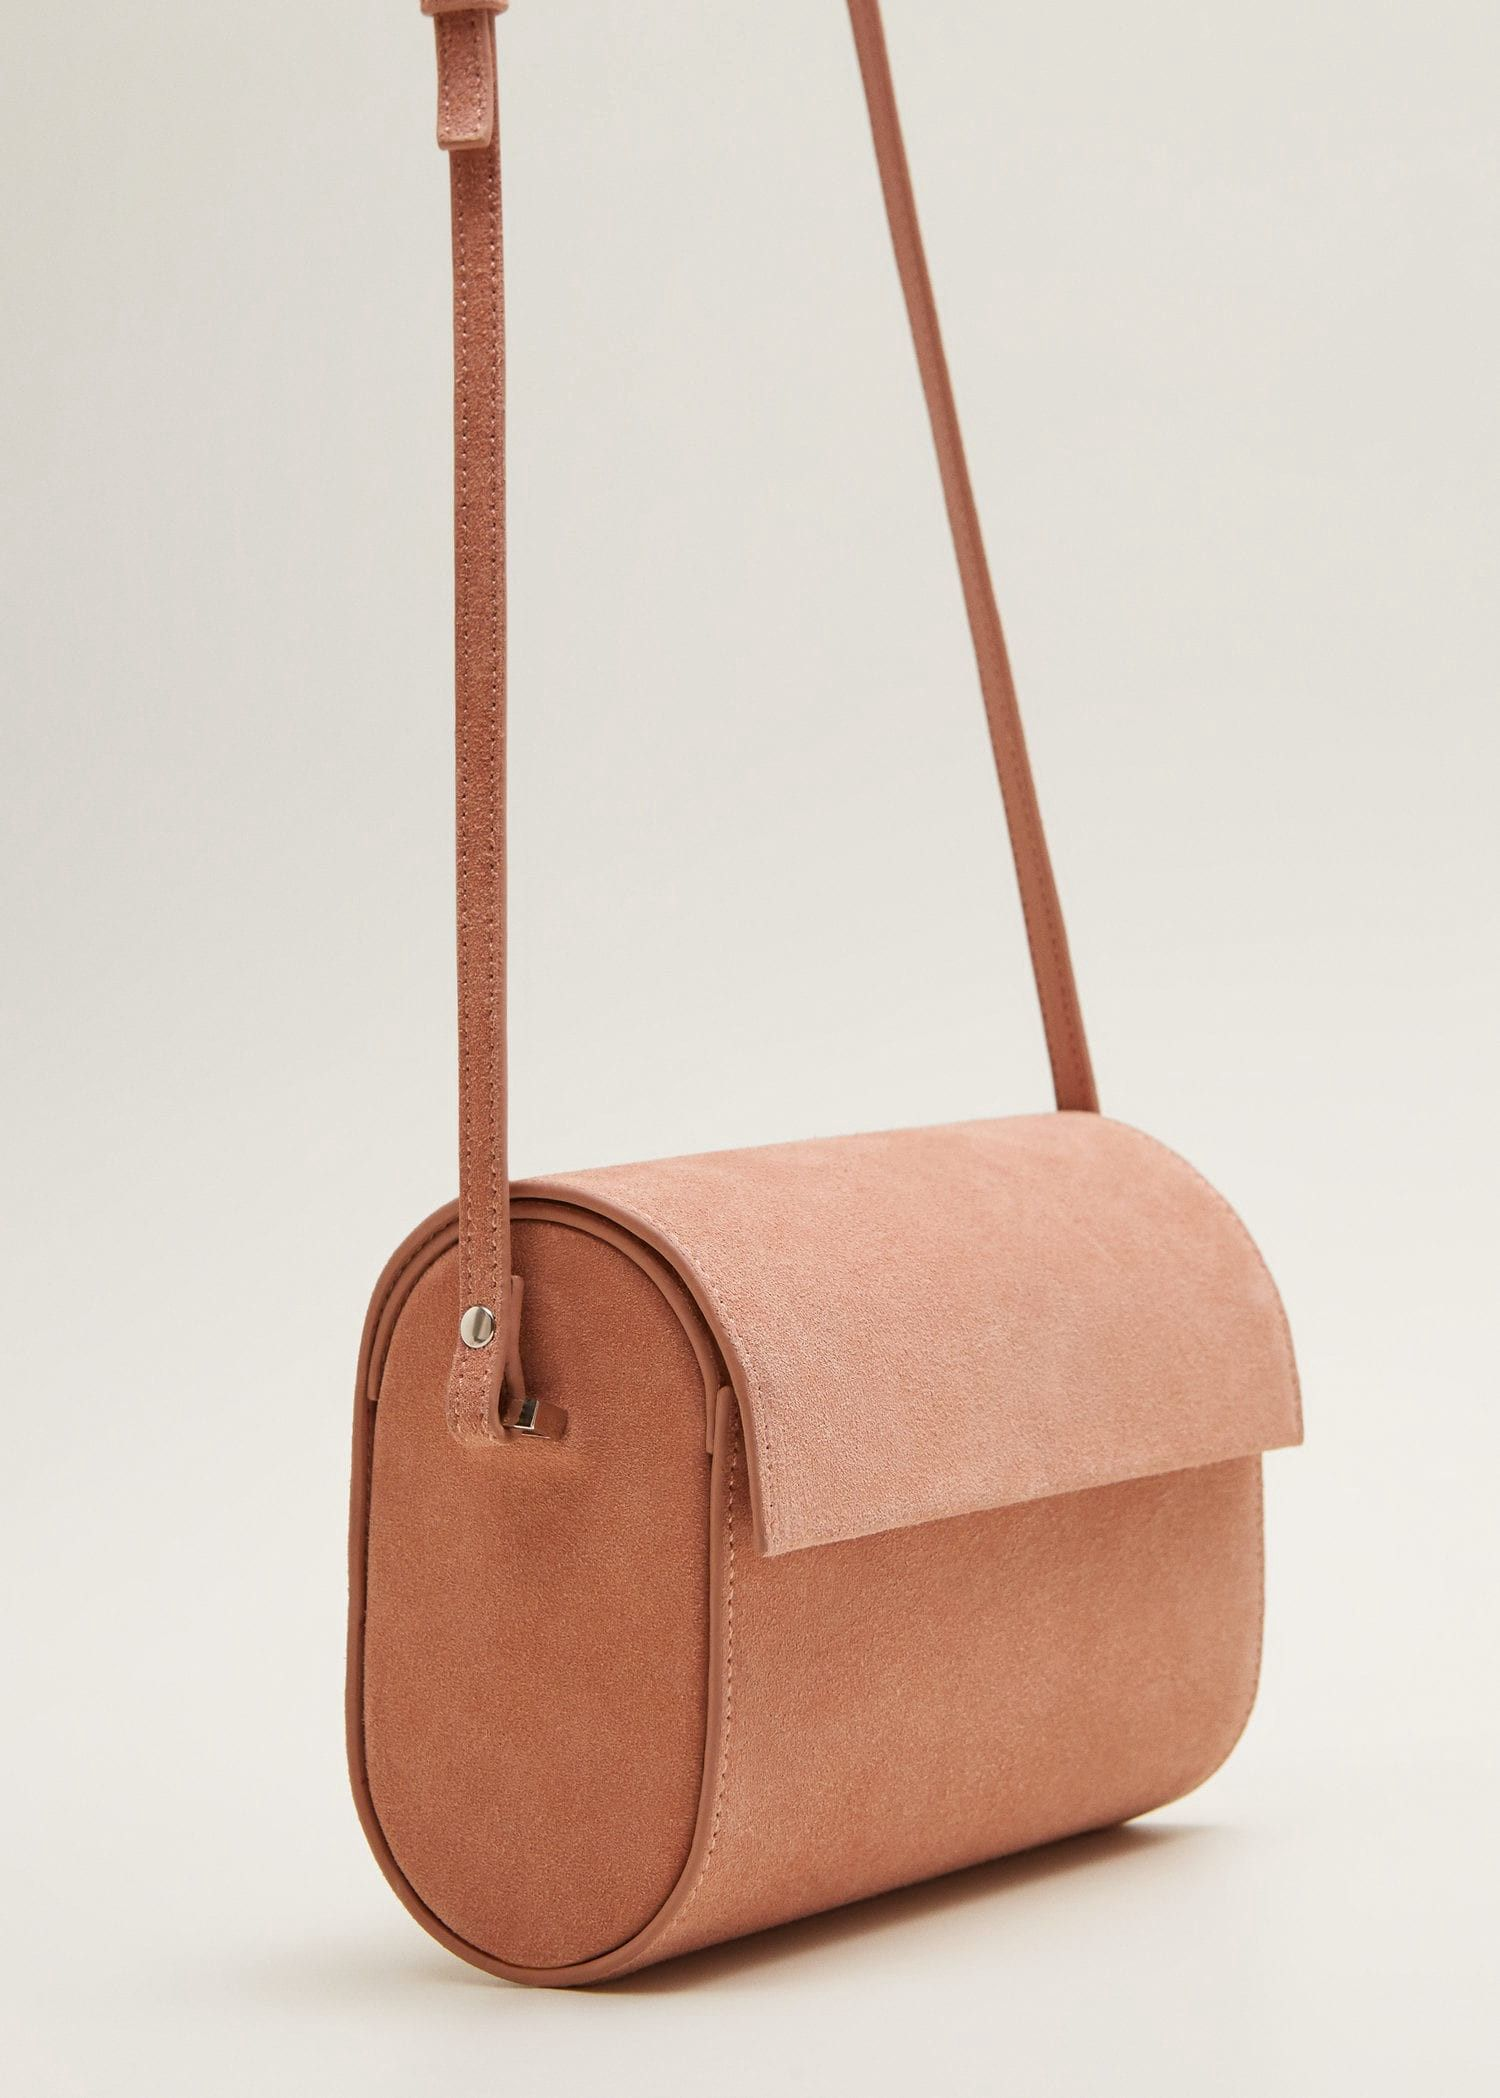 Leather cylinder bag by Mango   Products   Leather, Bags, Mango 7785e26a8b9